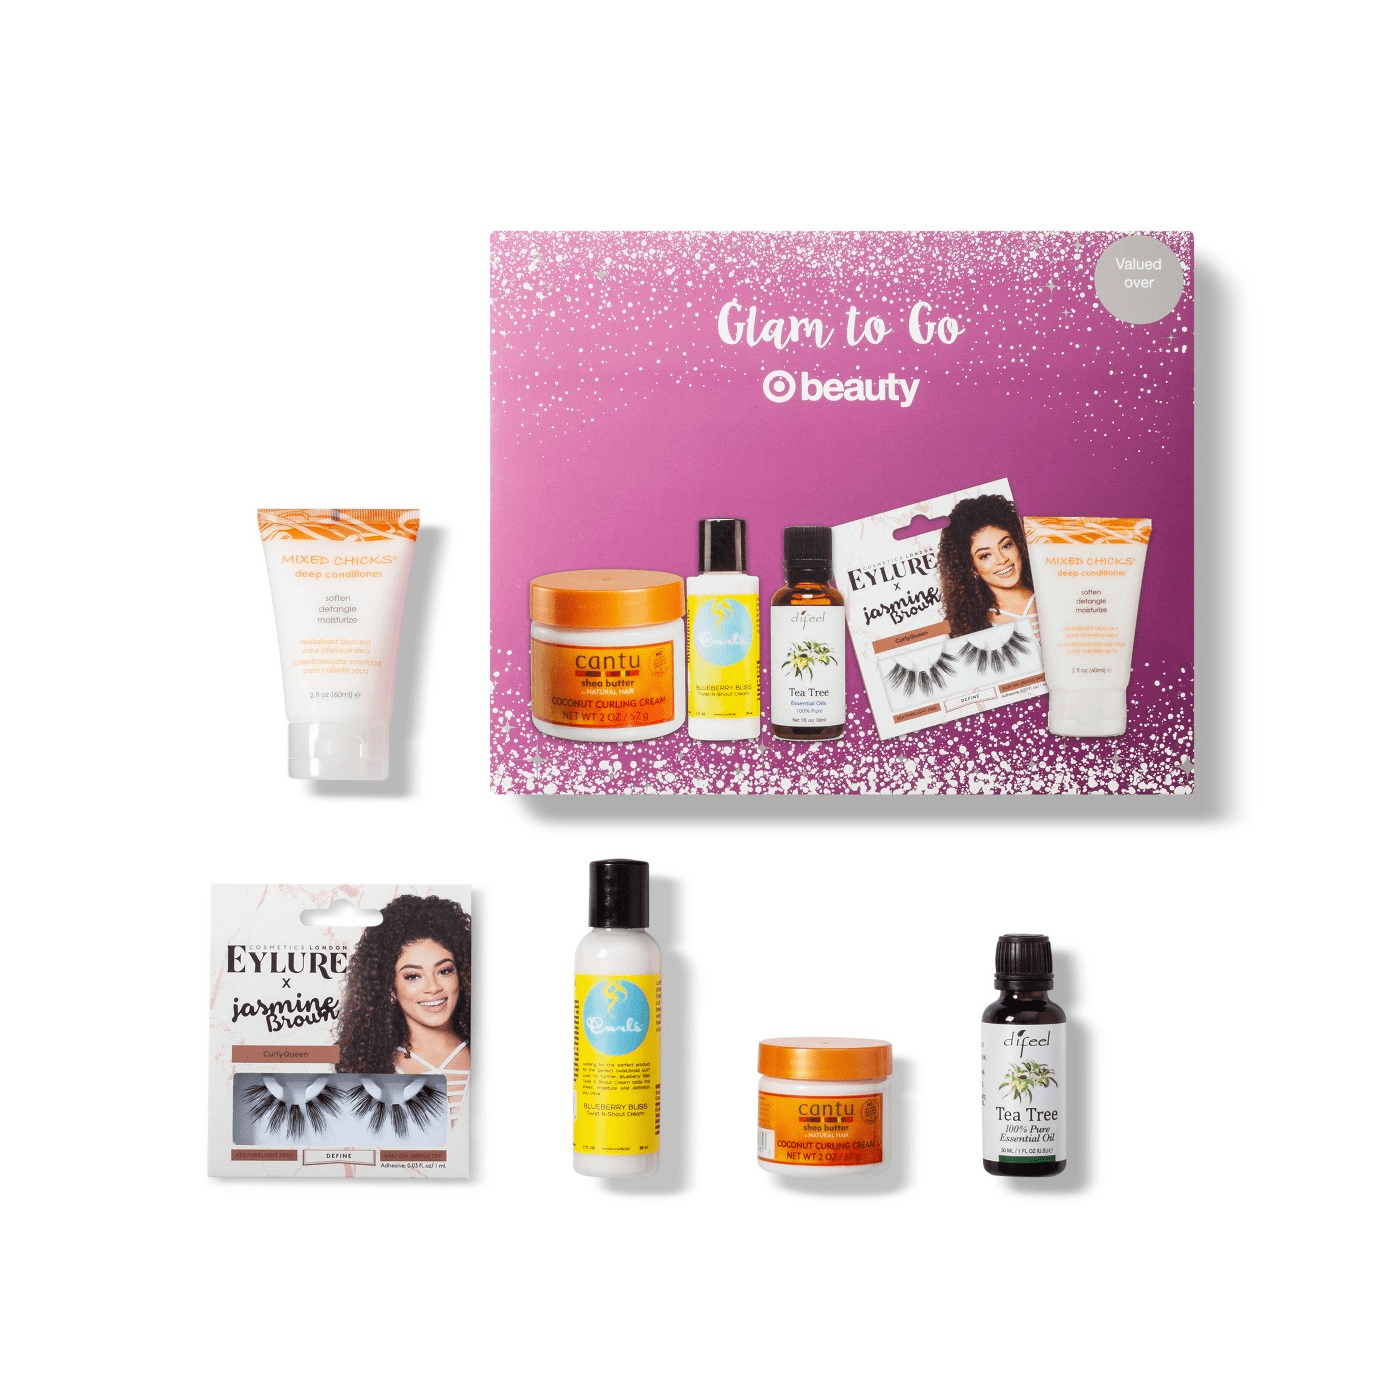 Target Holiday Beauty Box Black Friday Deal: Buy 1 Get 1 50